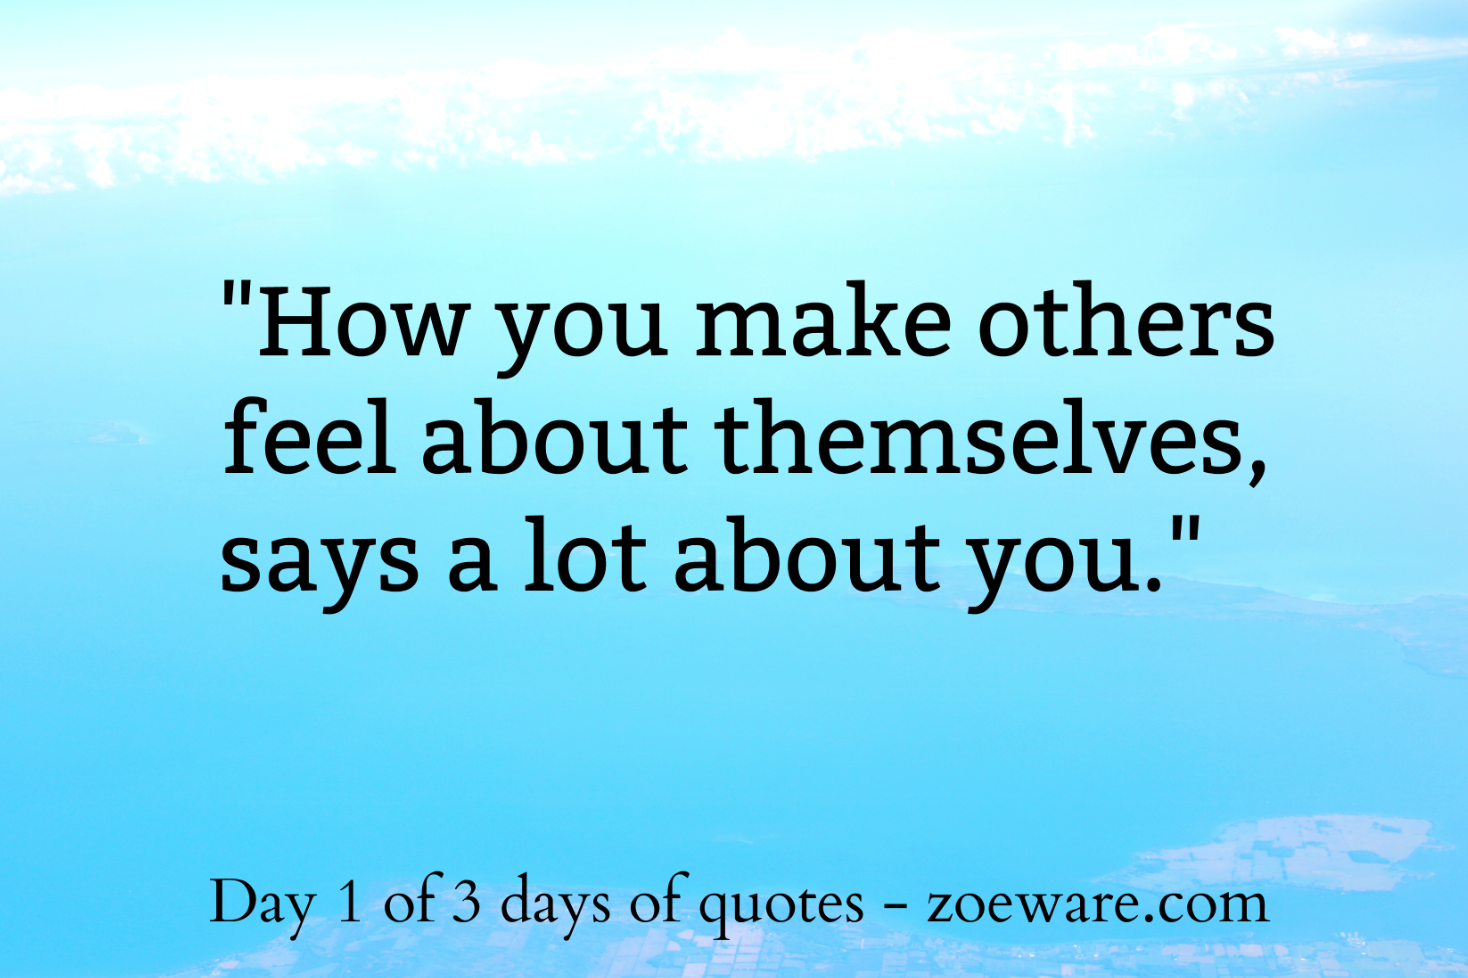 3 Days 3 Quotes - Day 1 - Zoë Ware